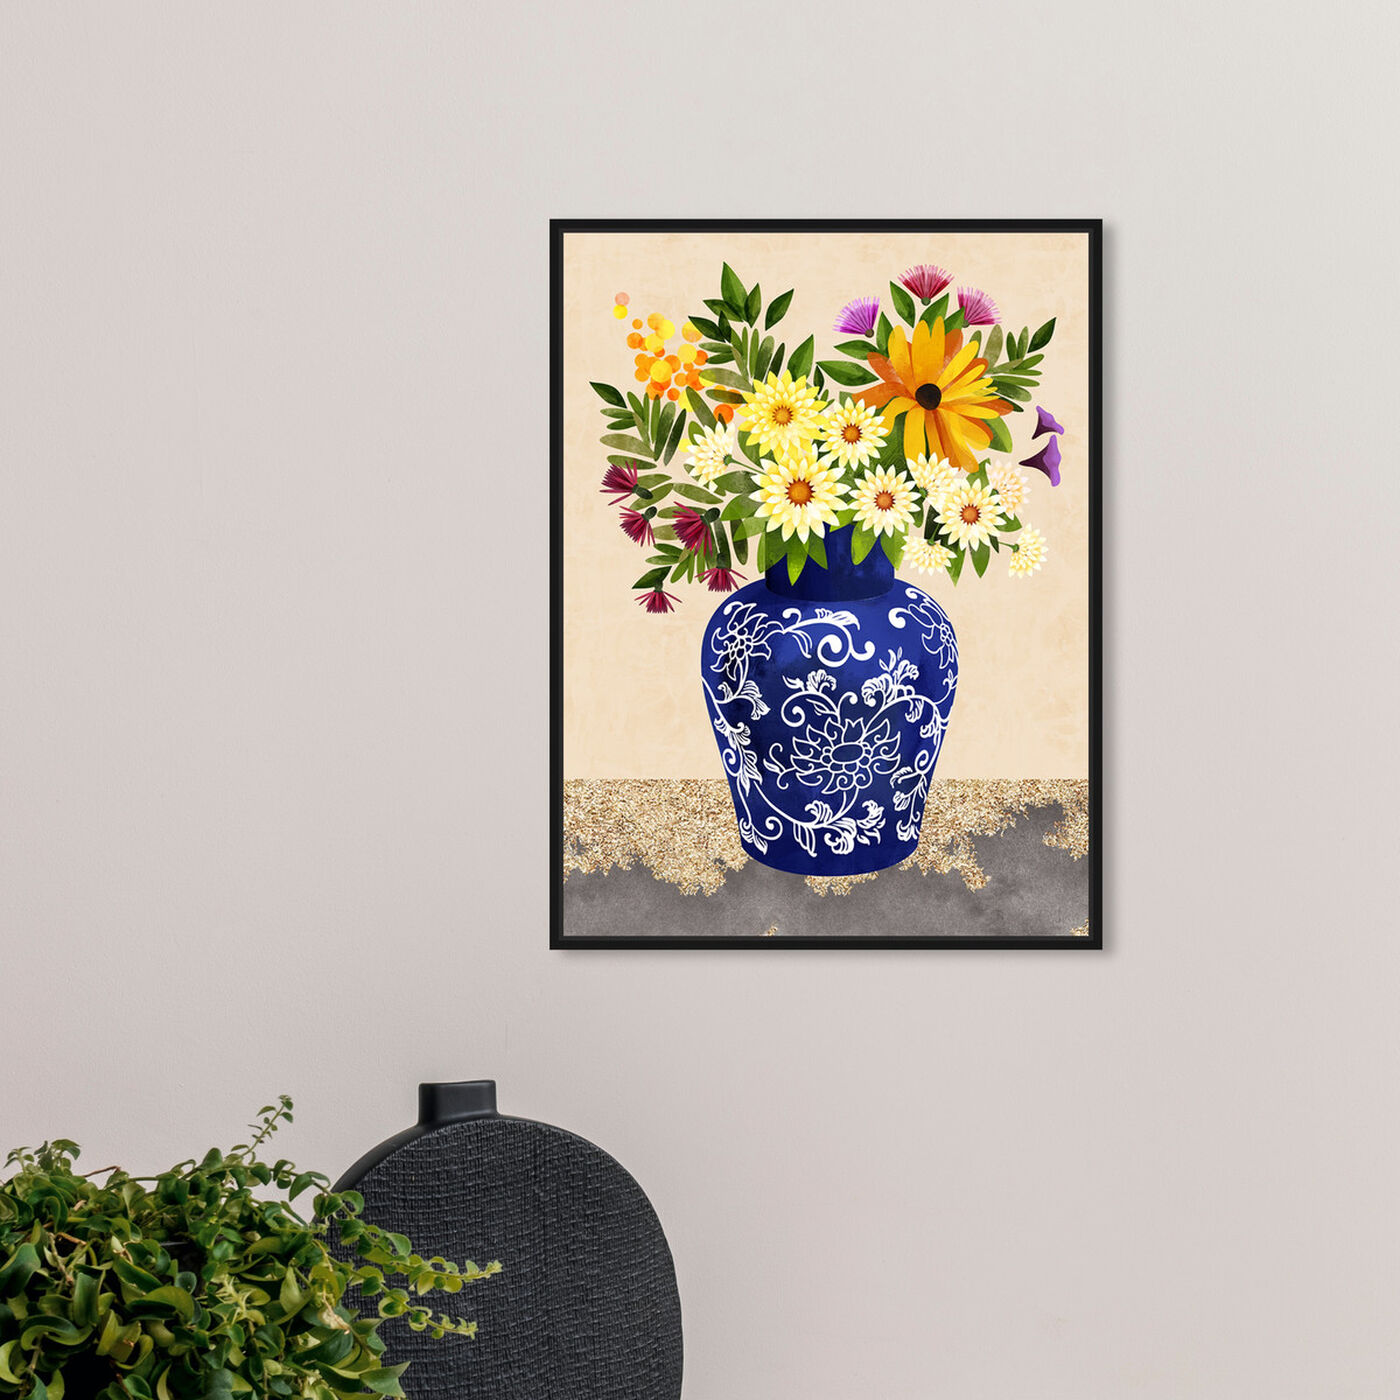 Hanging view of Flor Porcelain II featuring floral and botanical and florals art.